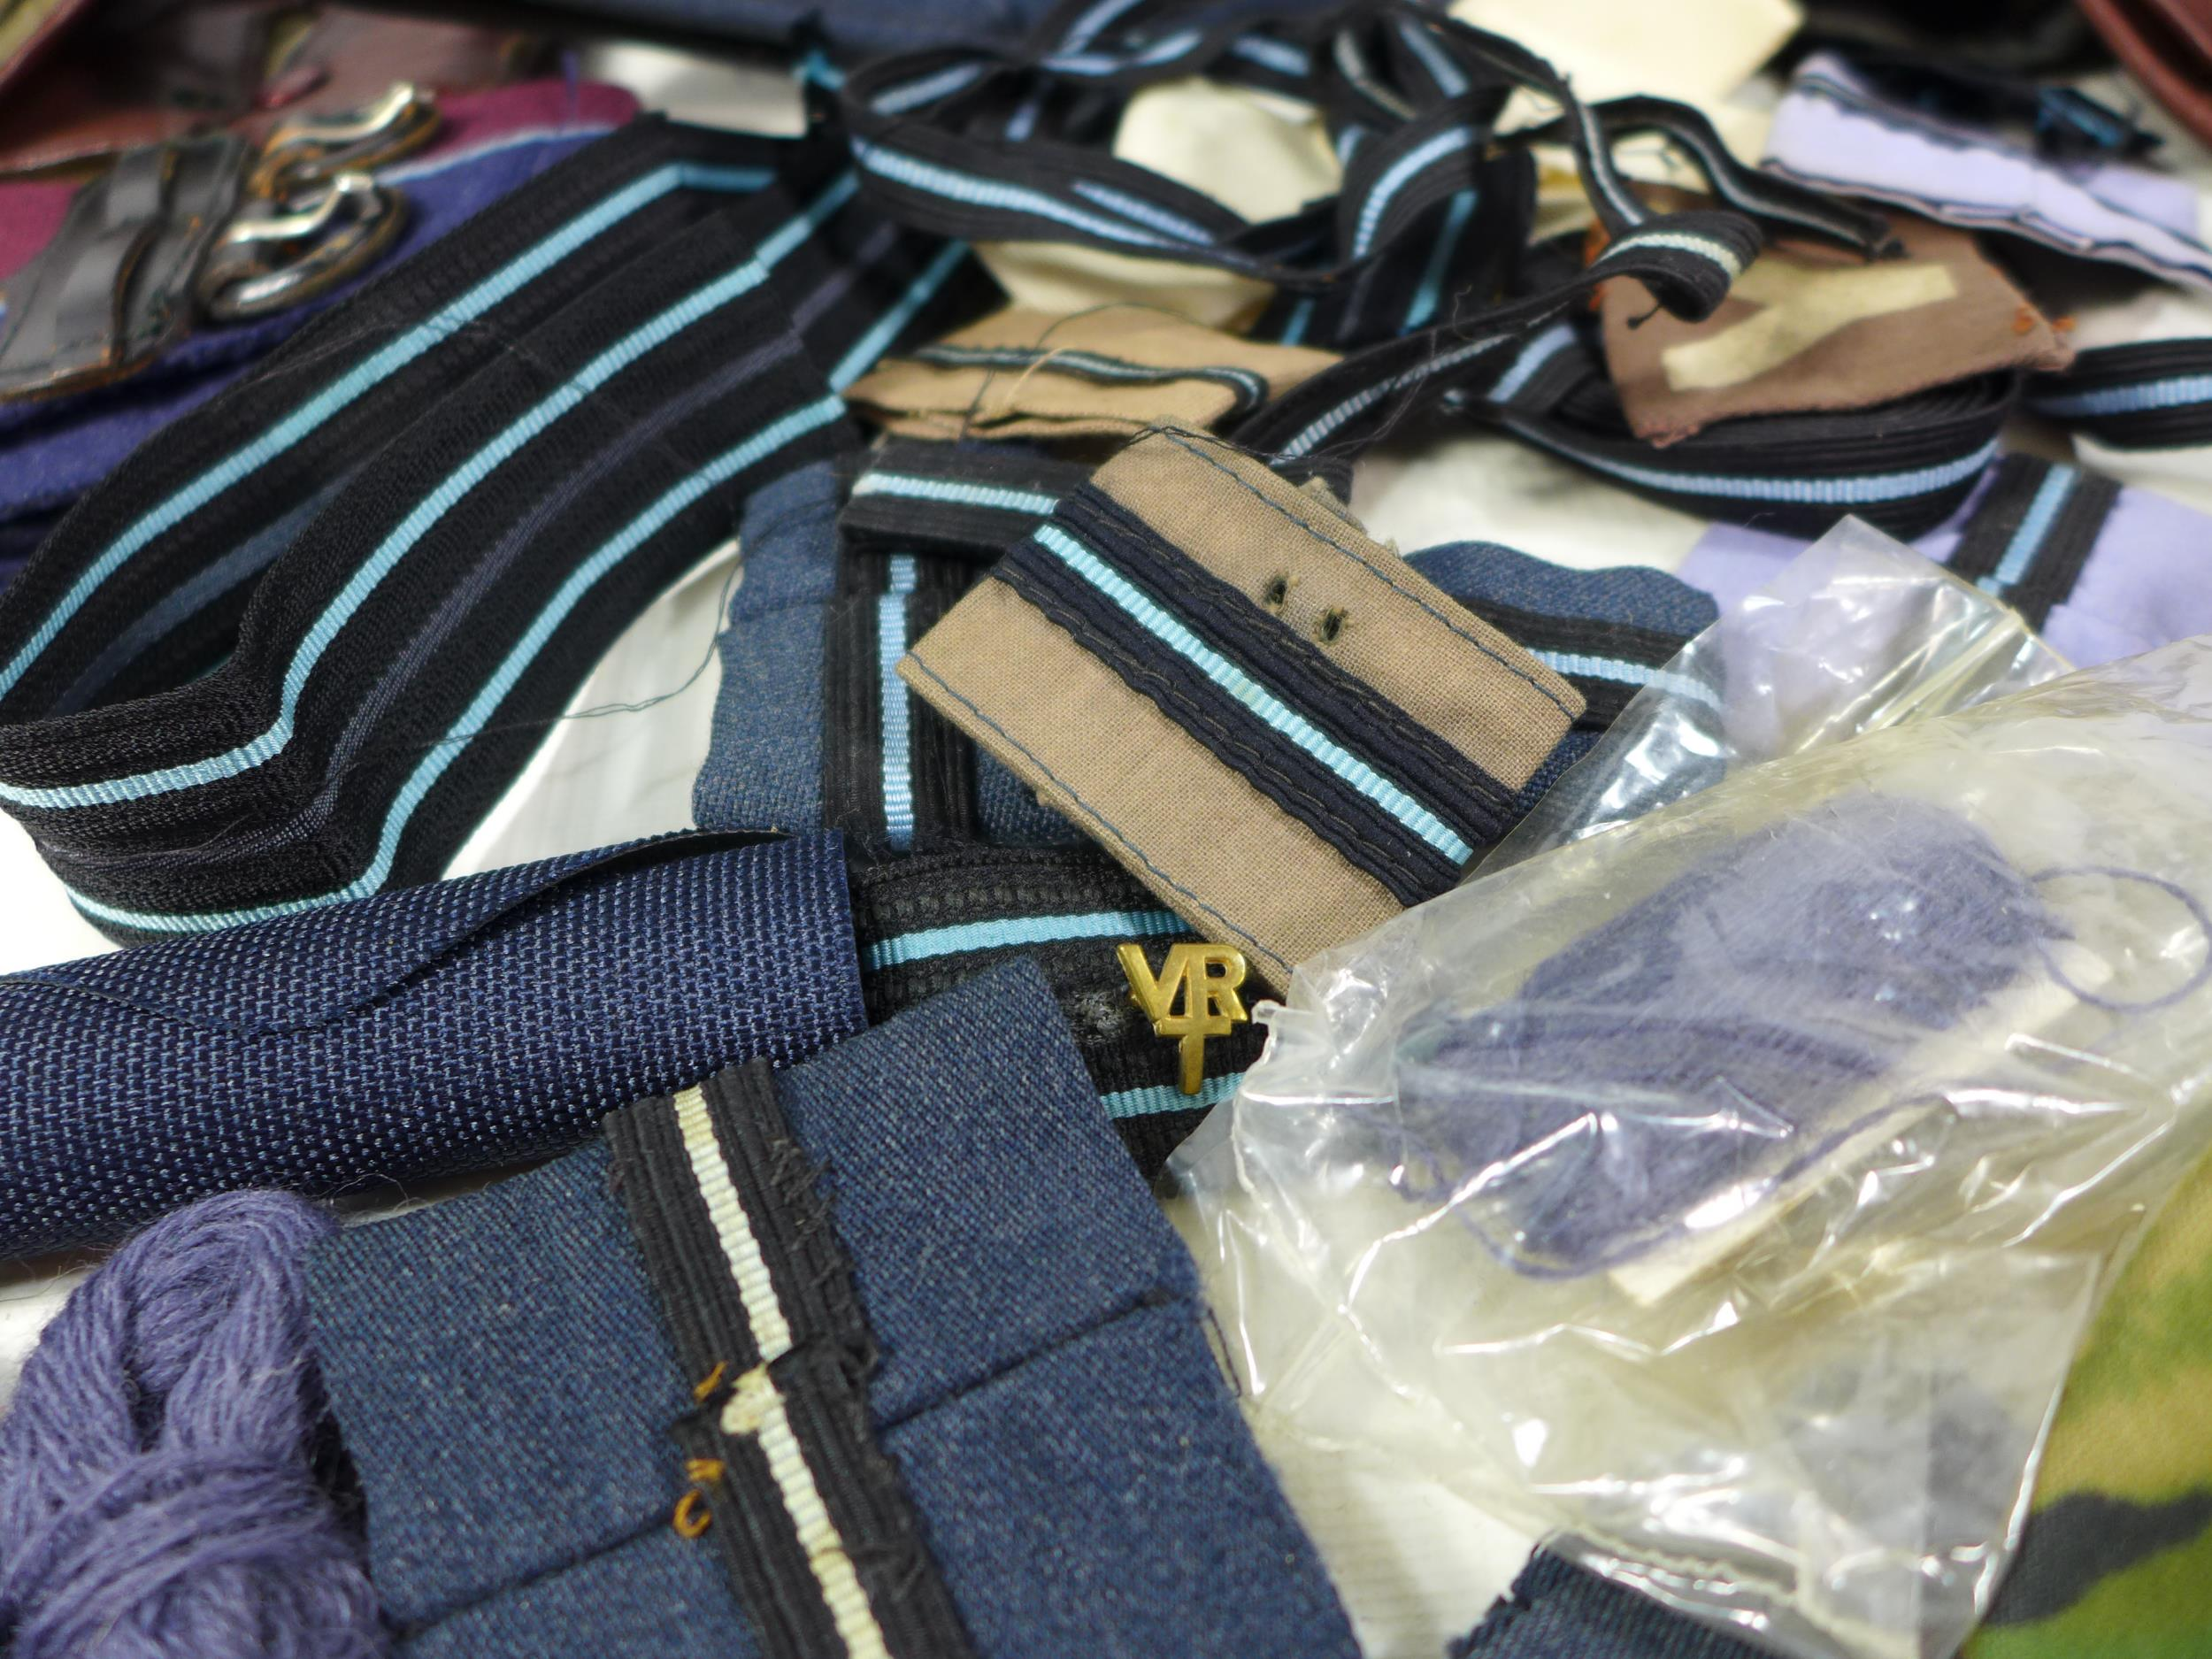 A COLLECTION OF RAF MEMORABILIA COMPRISING CAP, GLOVES, BELTS, FLASHES ETC - Image 5 of 6